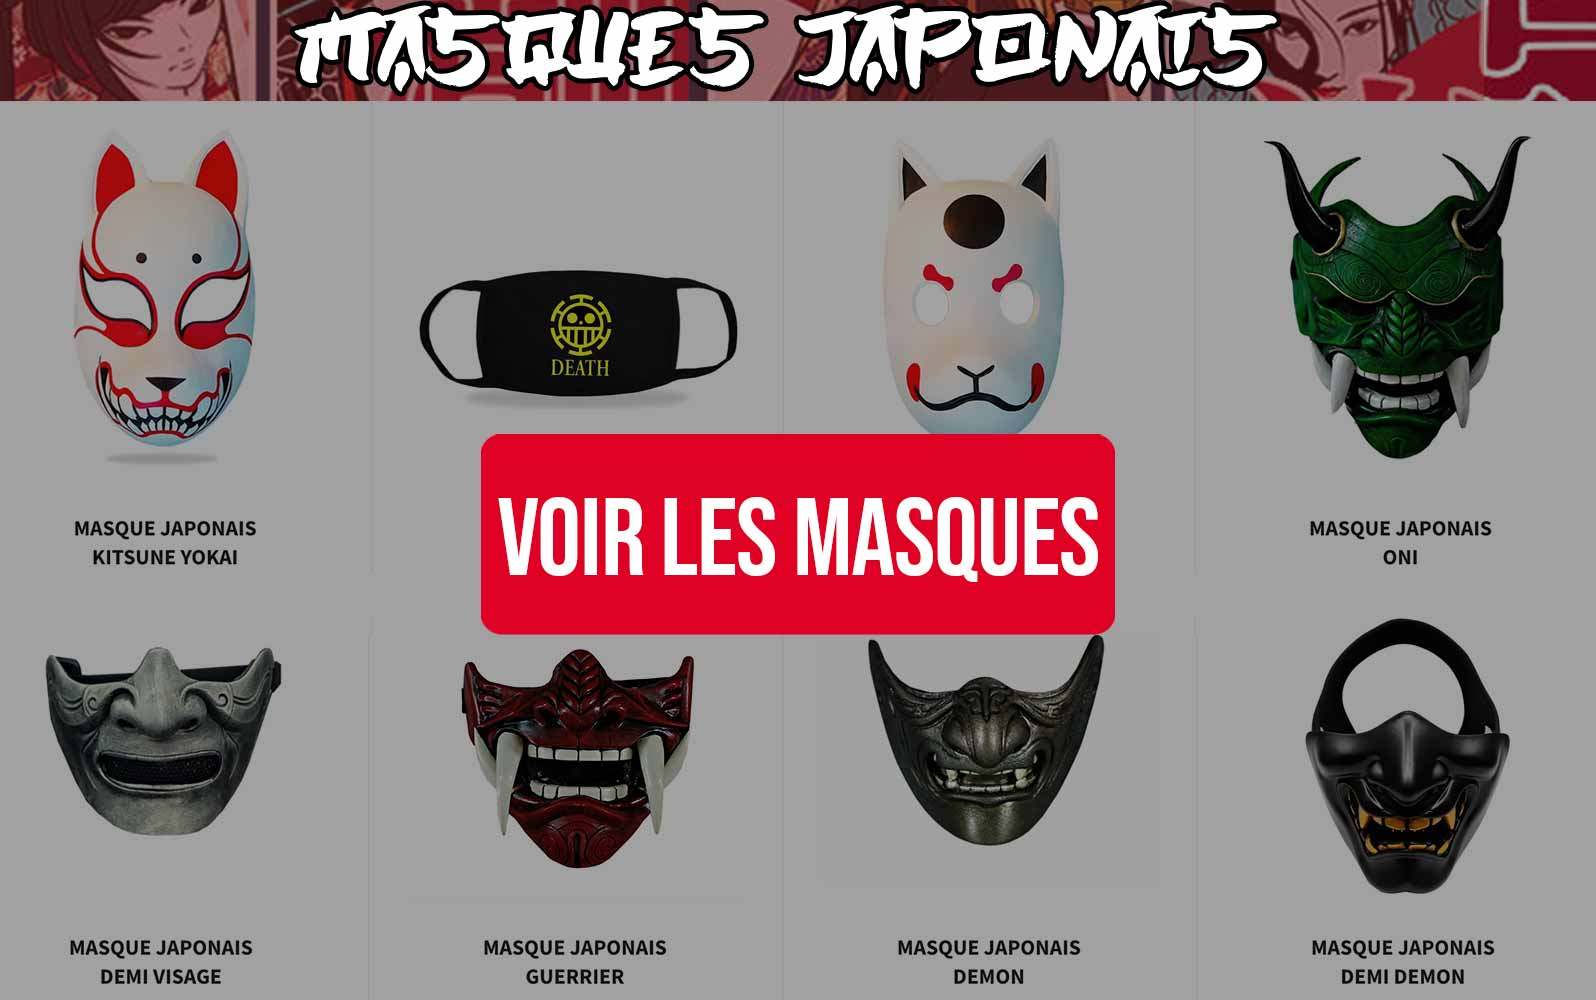 Masque Du Japon